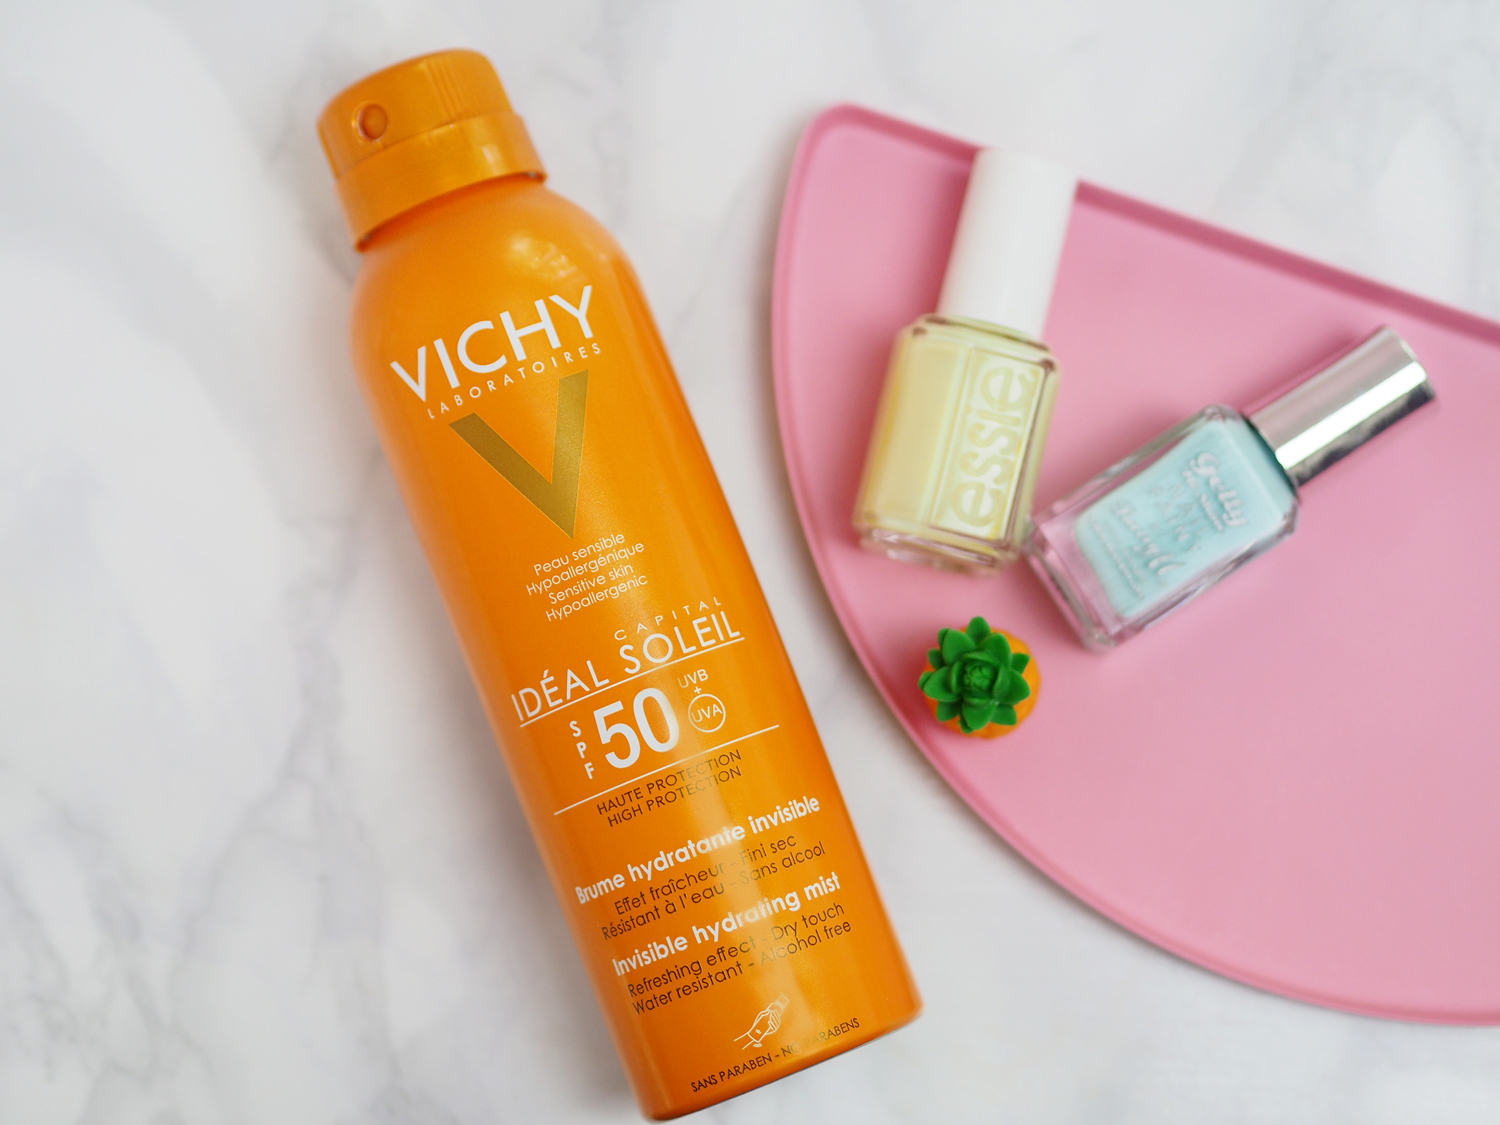 Vichy Ideal Soleil Invisible Hydrating Mist SPF 50 Review